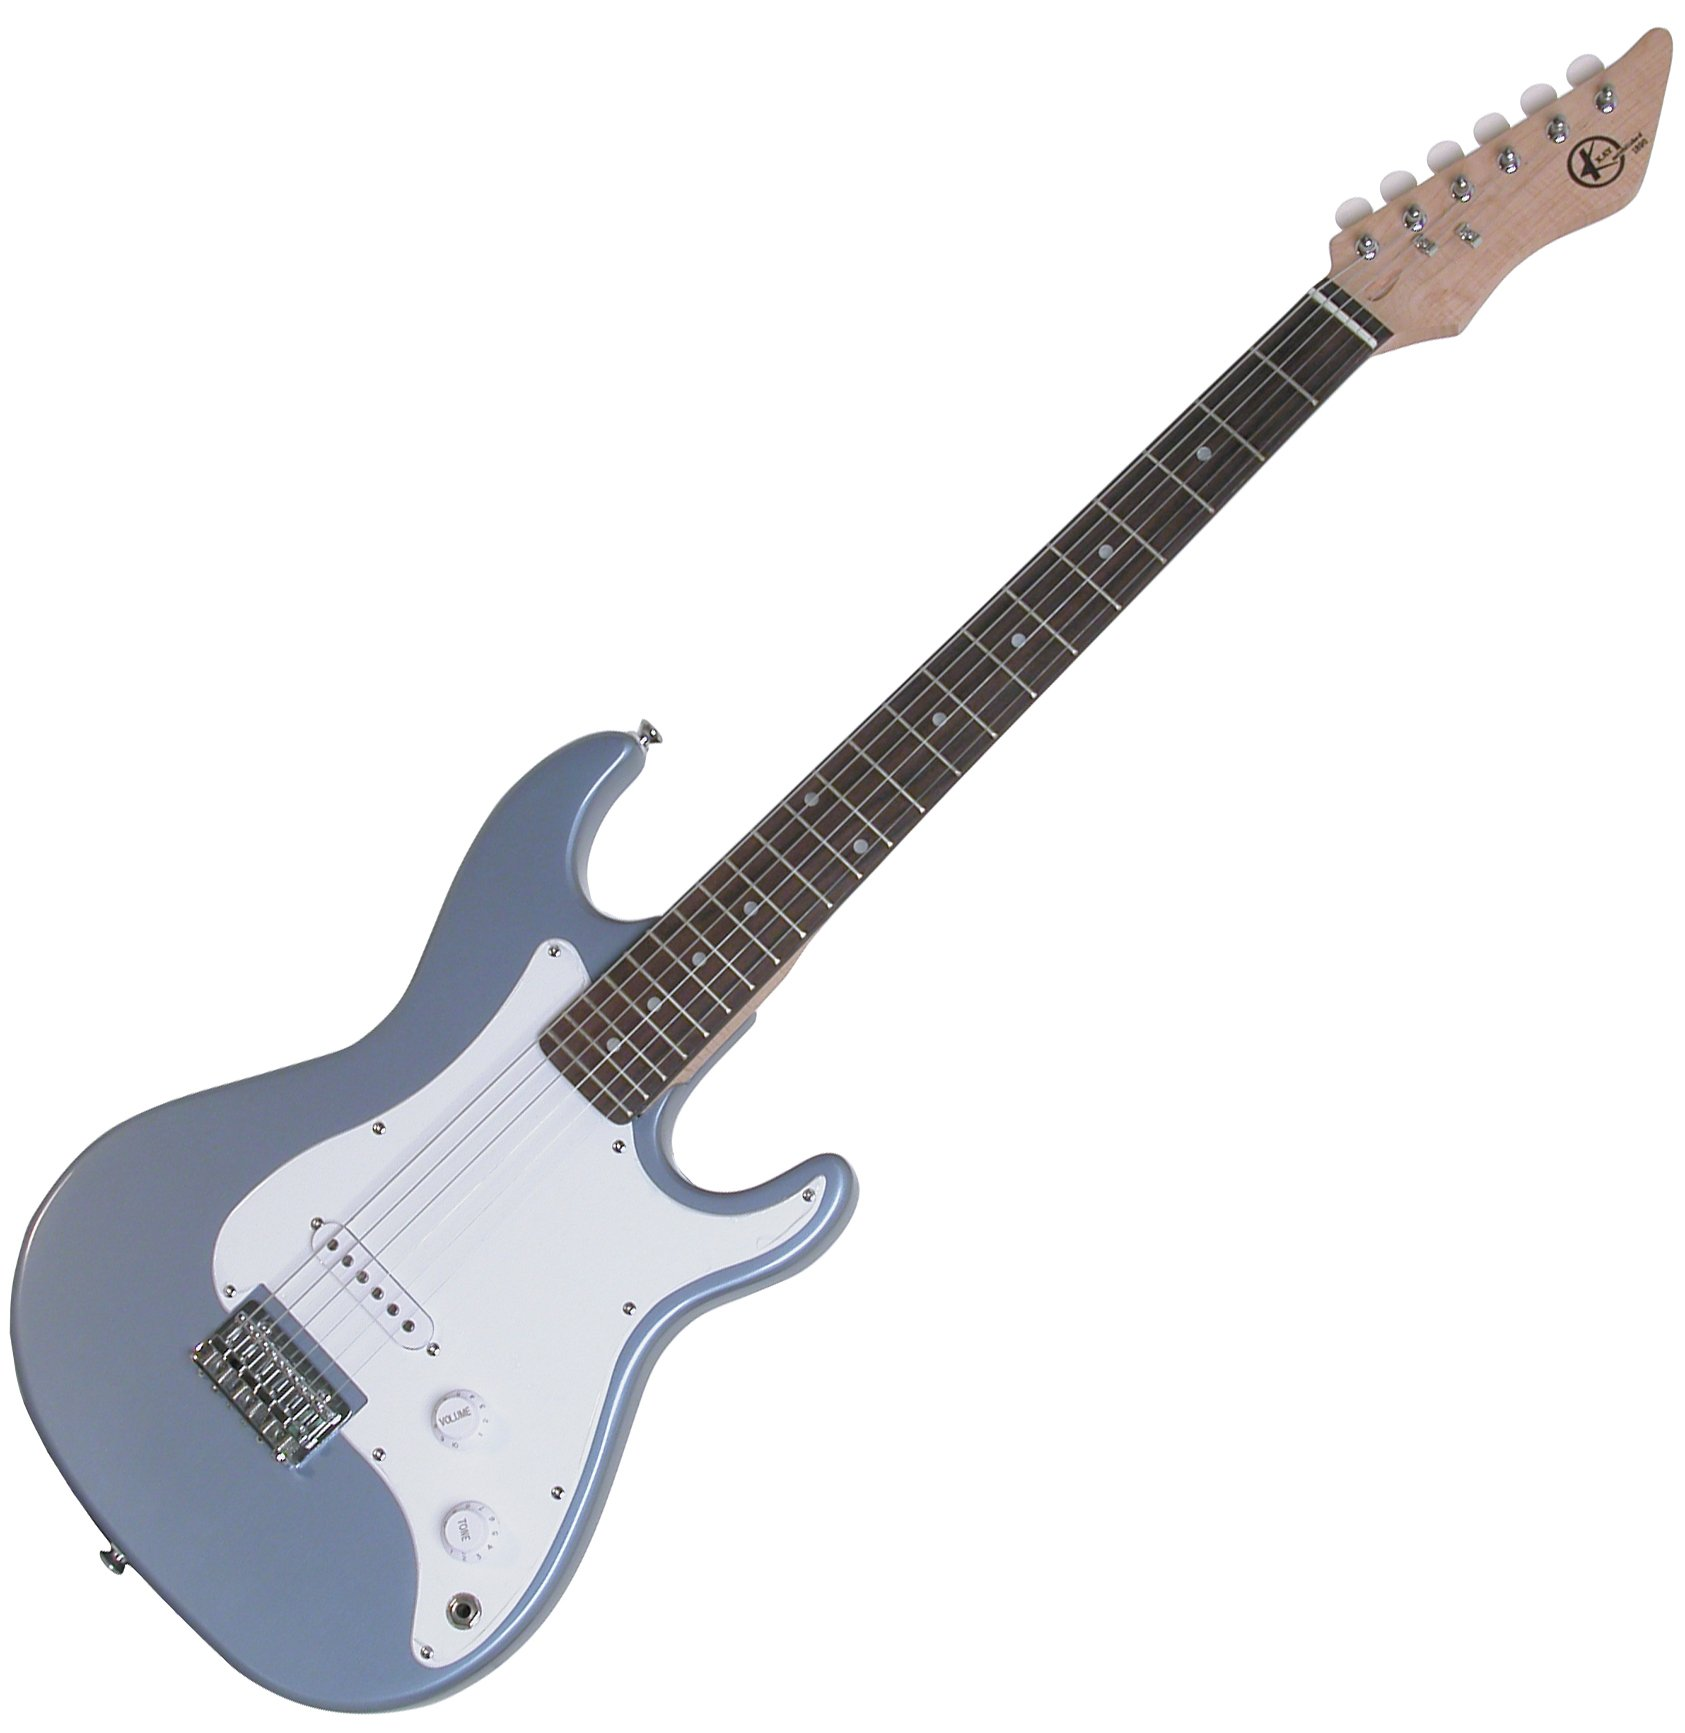 Cheap Kay KE17MBL Electric Guitar 7/8 Solid Body Full Scale Neck Blue Black Friday & Cyber Monday 2019